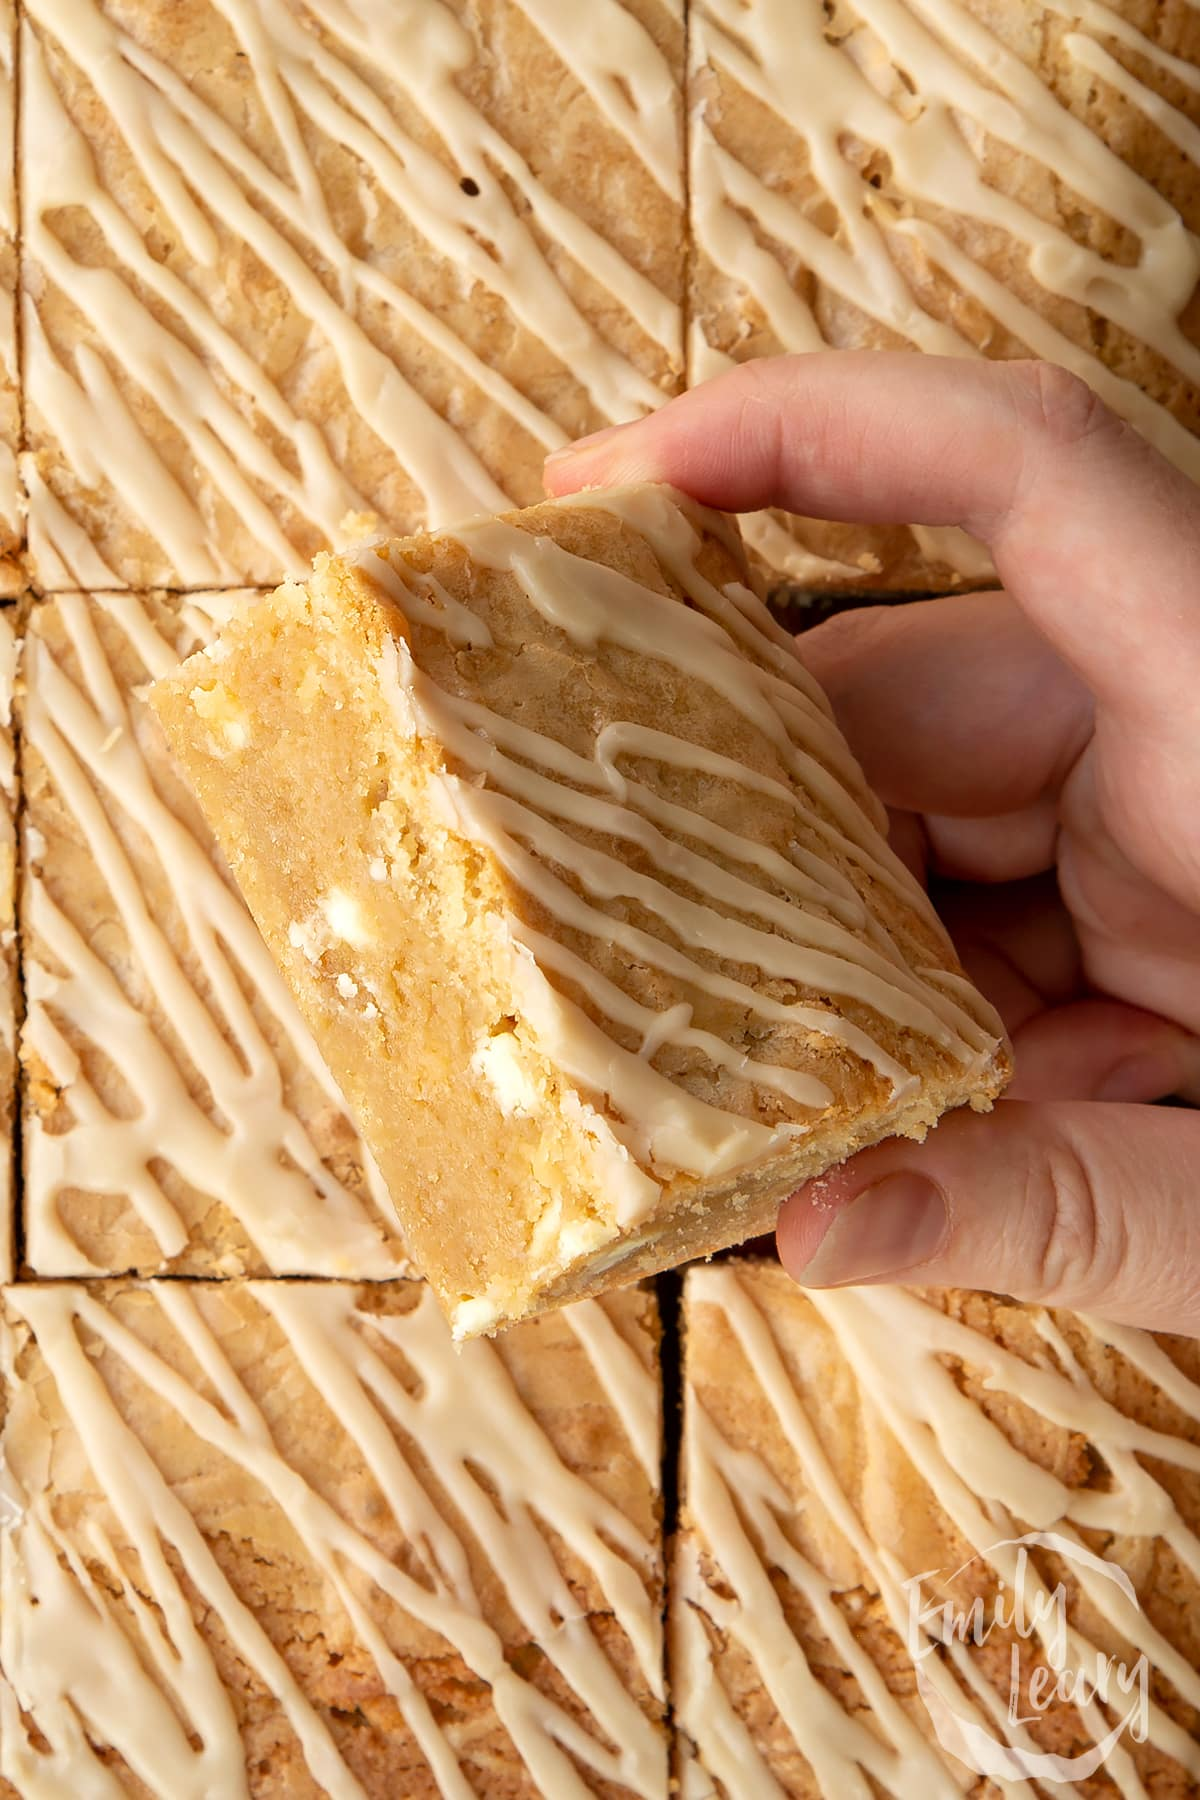 Hand holding a square of Baileys blondie above more blondies.